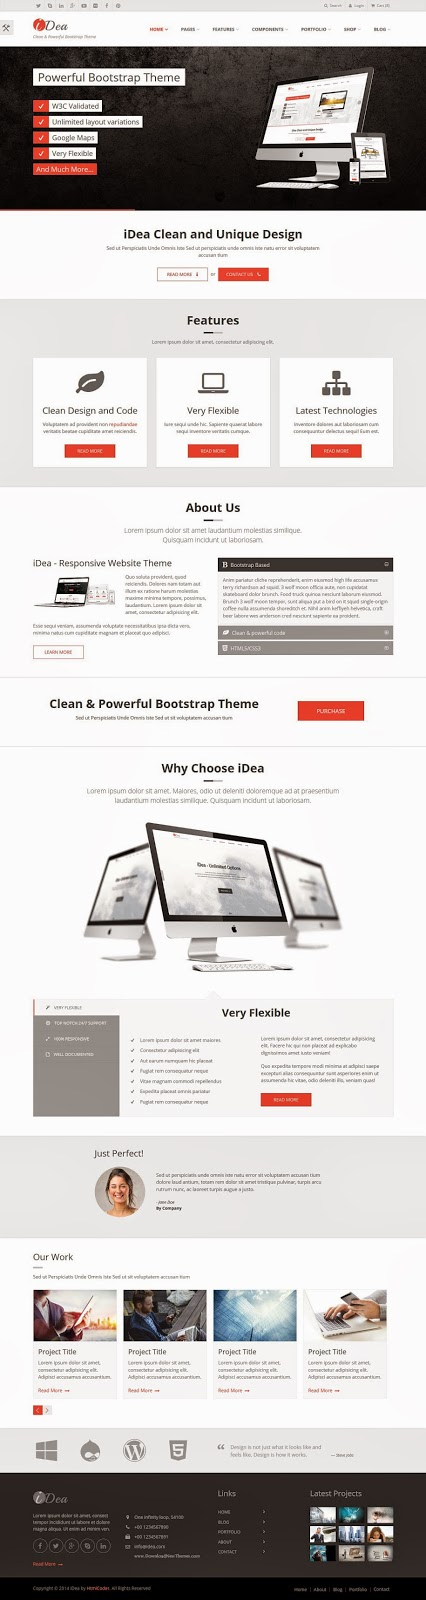 Bootstrap HTML5 Template 2015